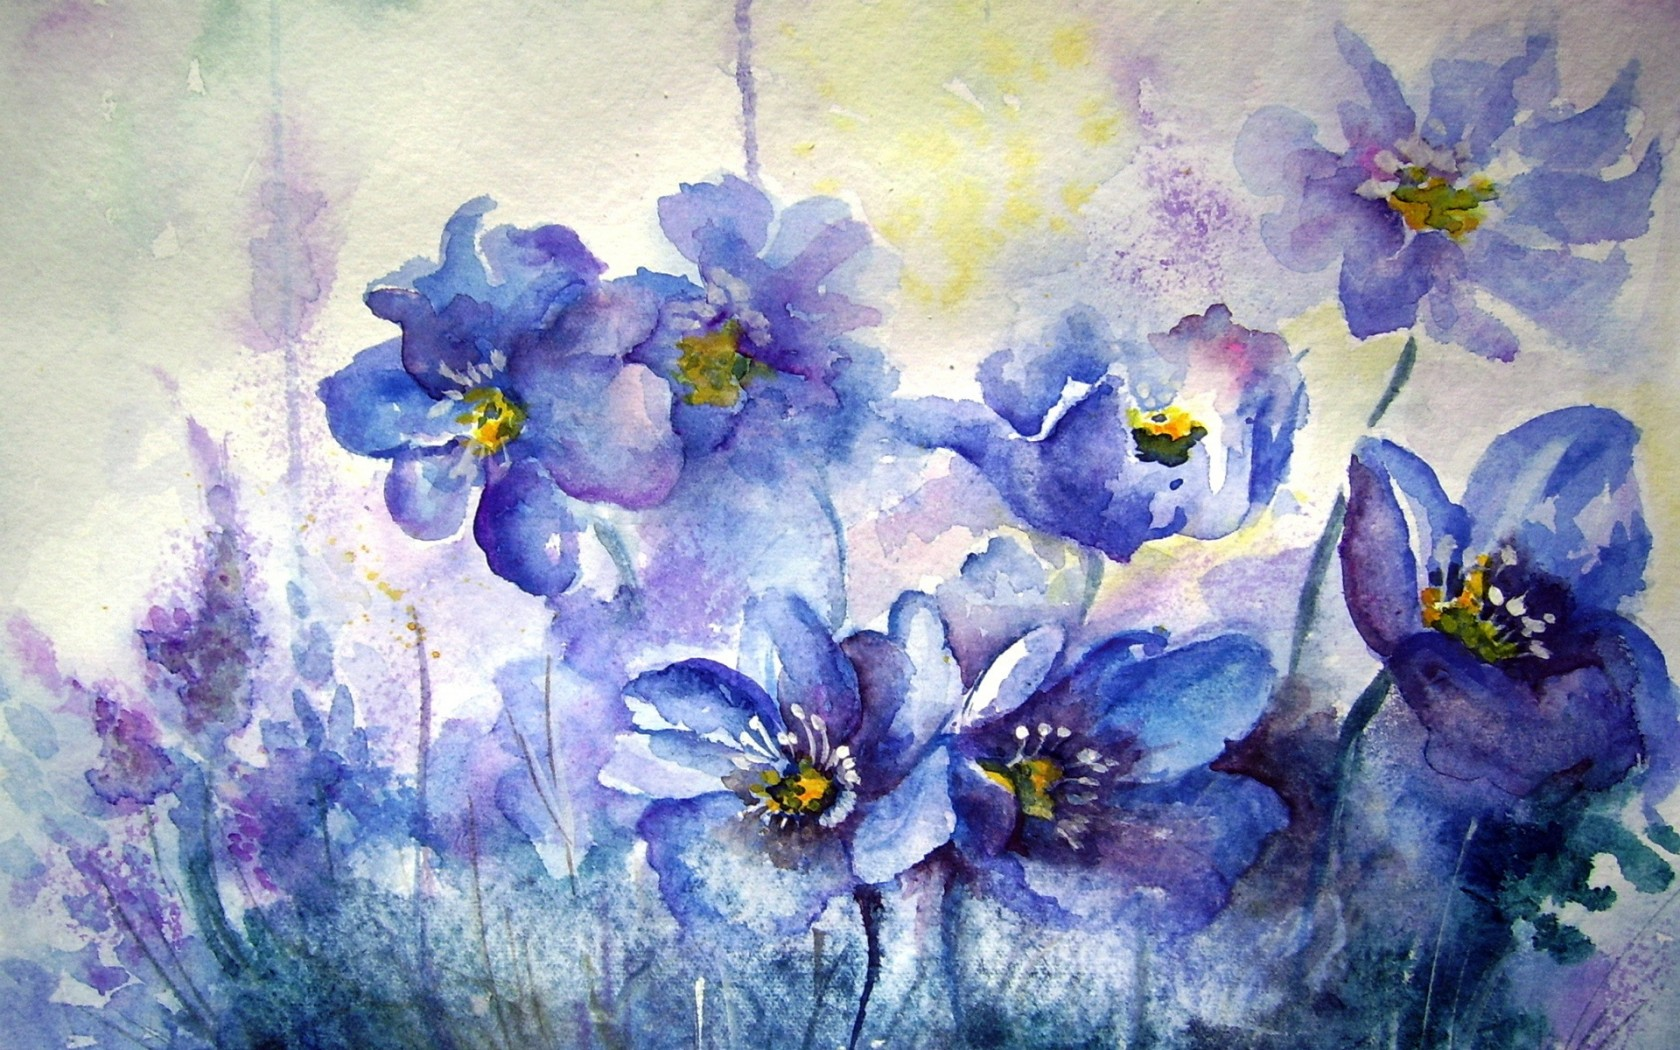 Wall Painting Ideas Hd Wallpapers : Blue flowers wall painting cool hd wallpaper